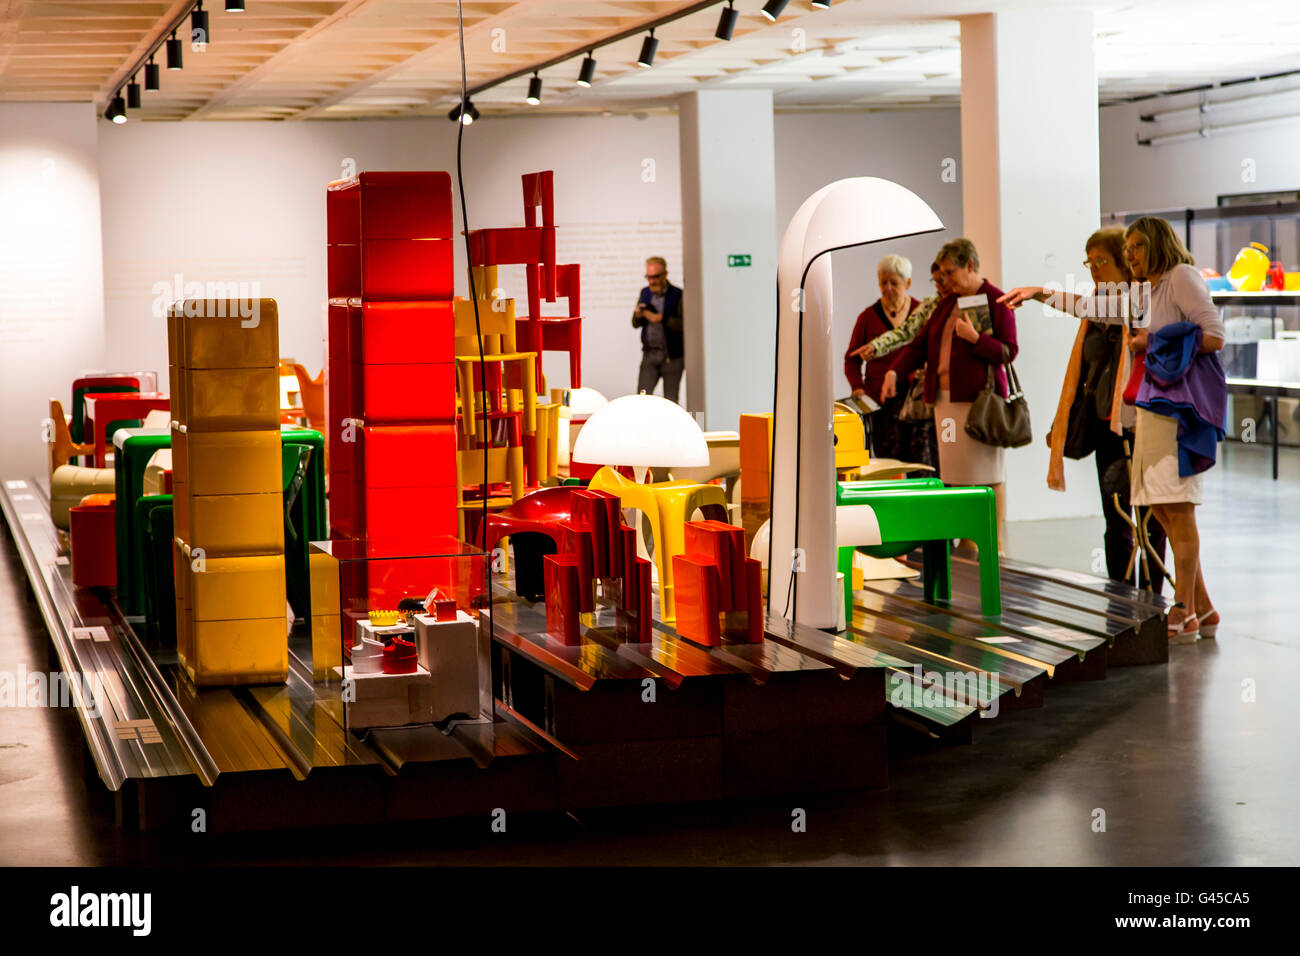 ADAM, Art & Design Atomium Museum, Brussels, permanent exhibition Plasticarium, design of  objects of the 70s - Stock Image